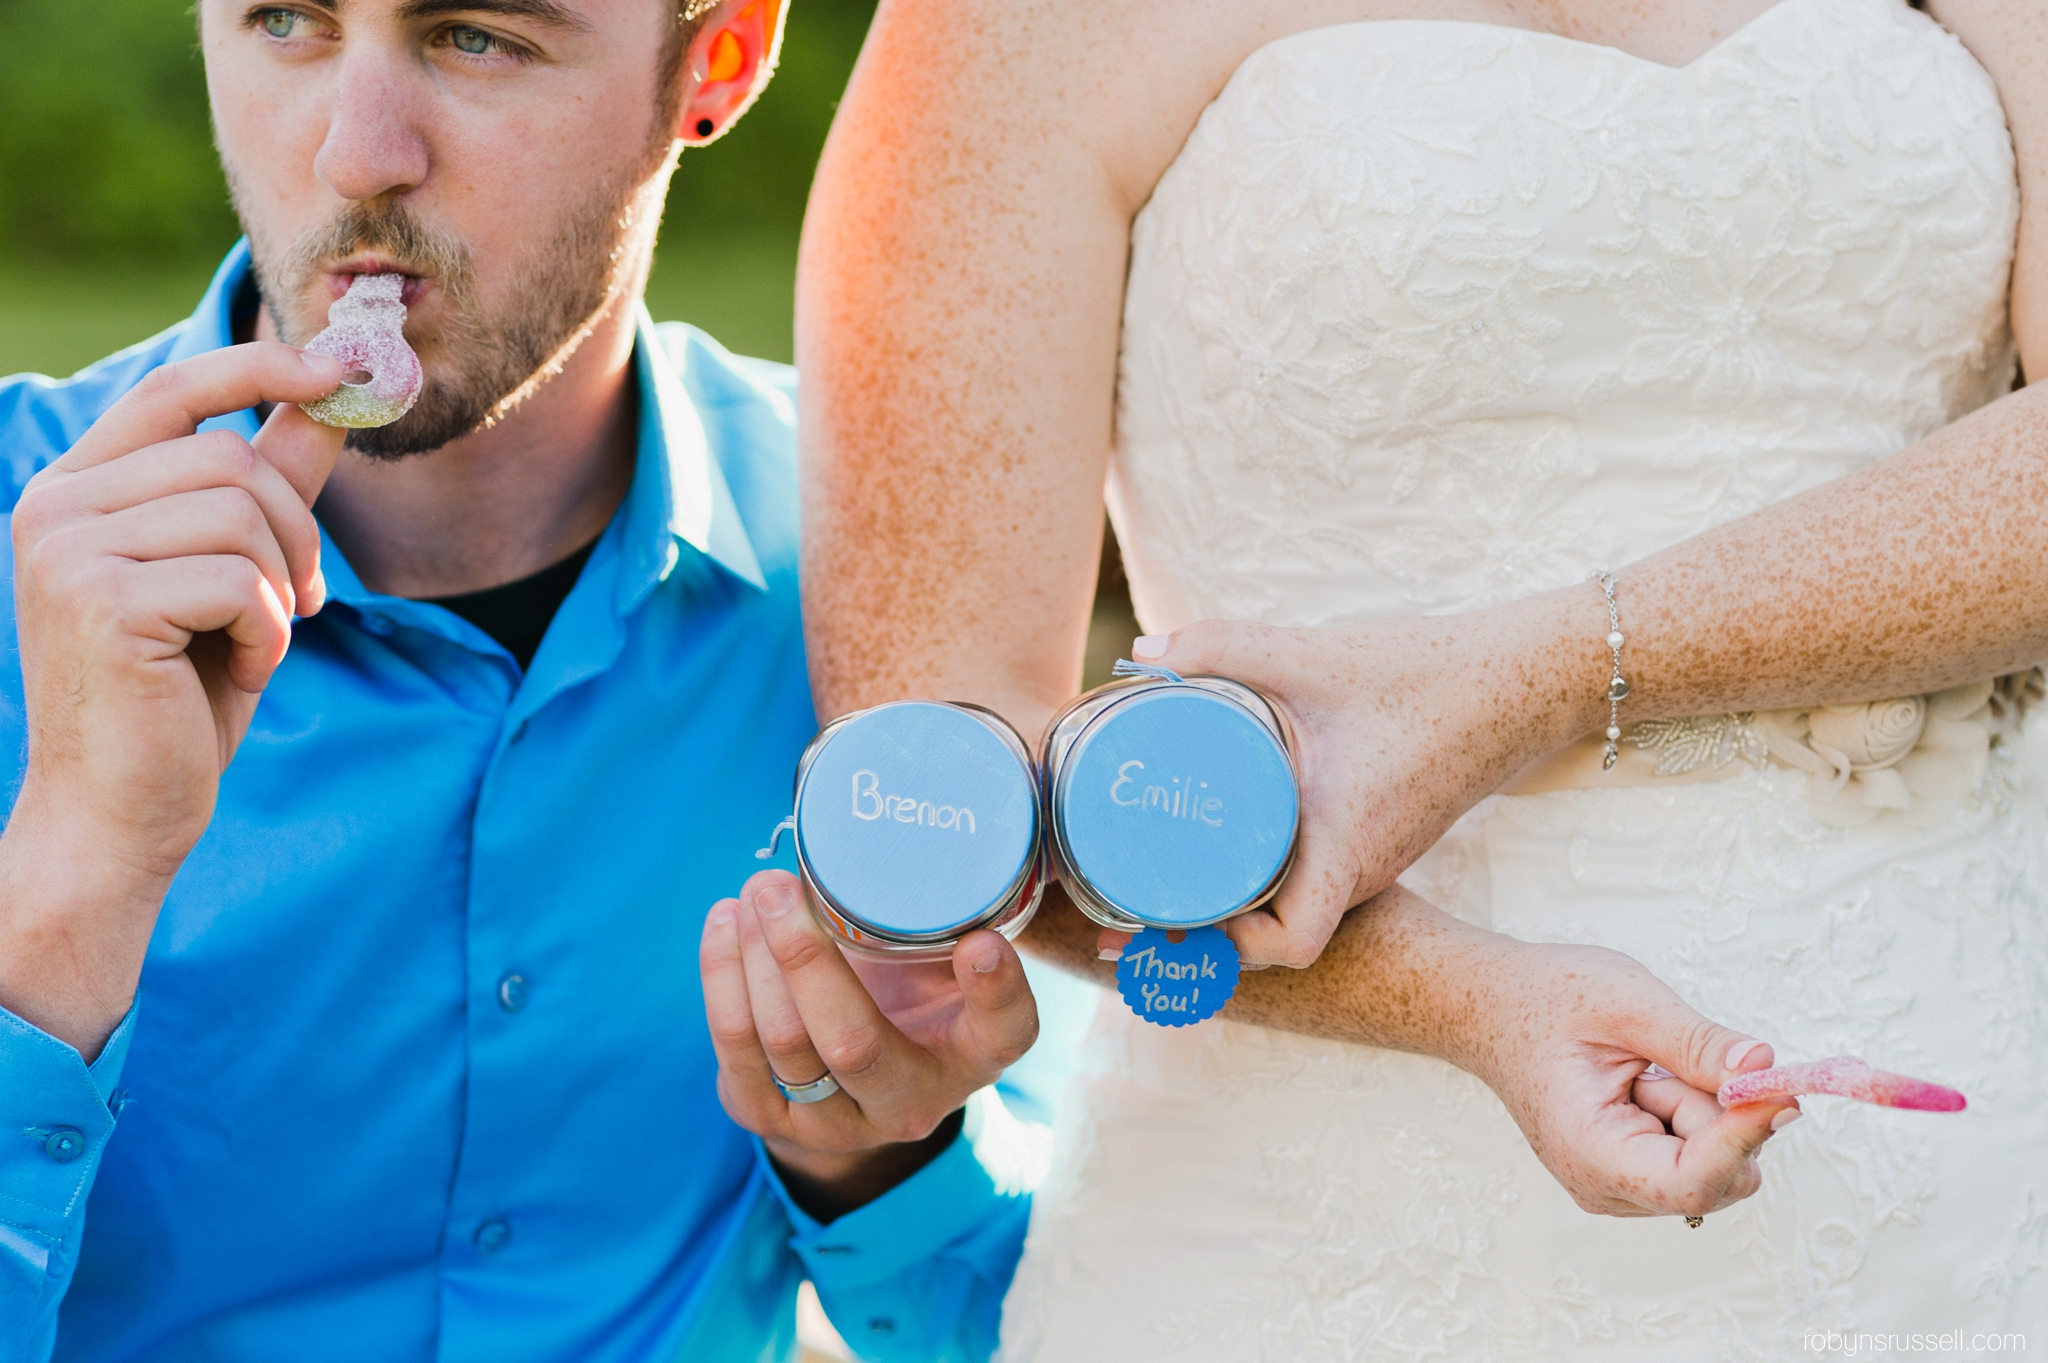 60-take-away-candy-jars-from-bride-and-groom.jpg